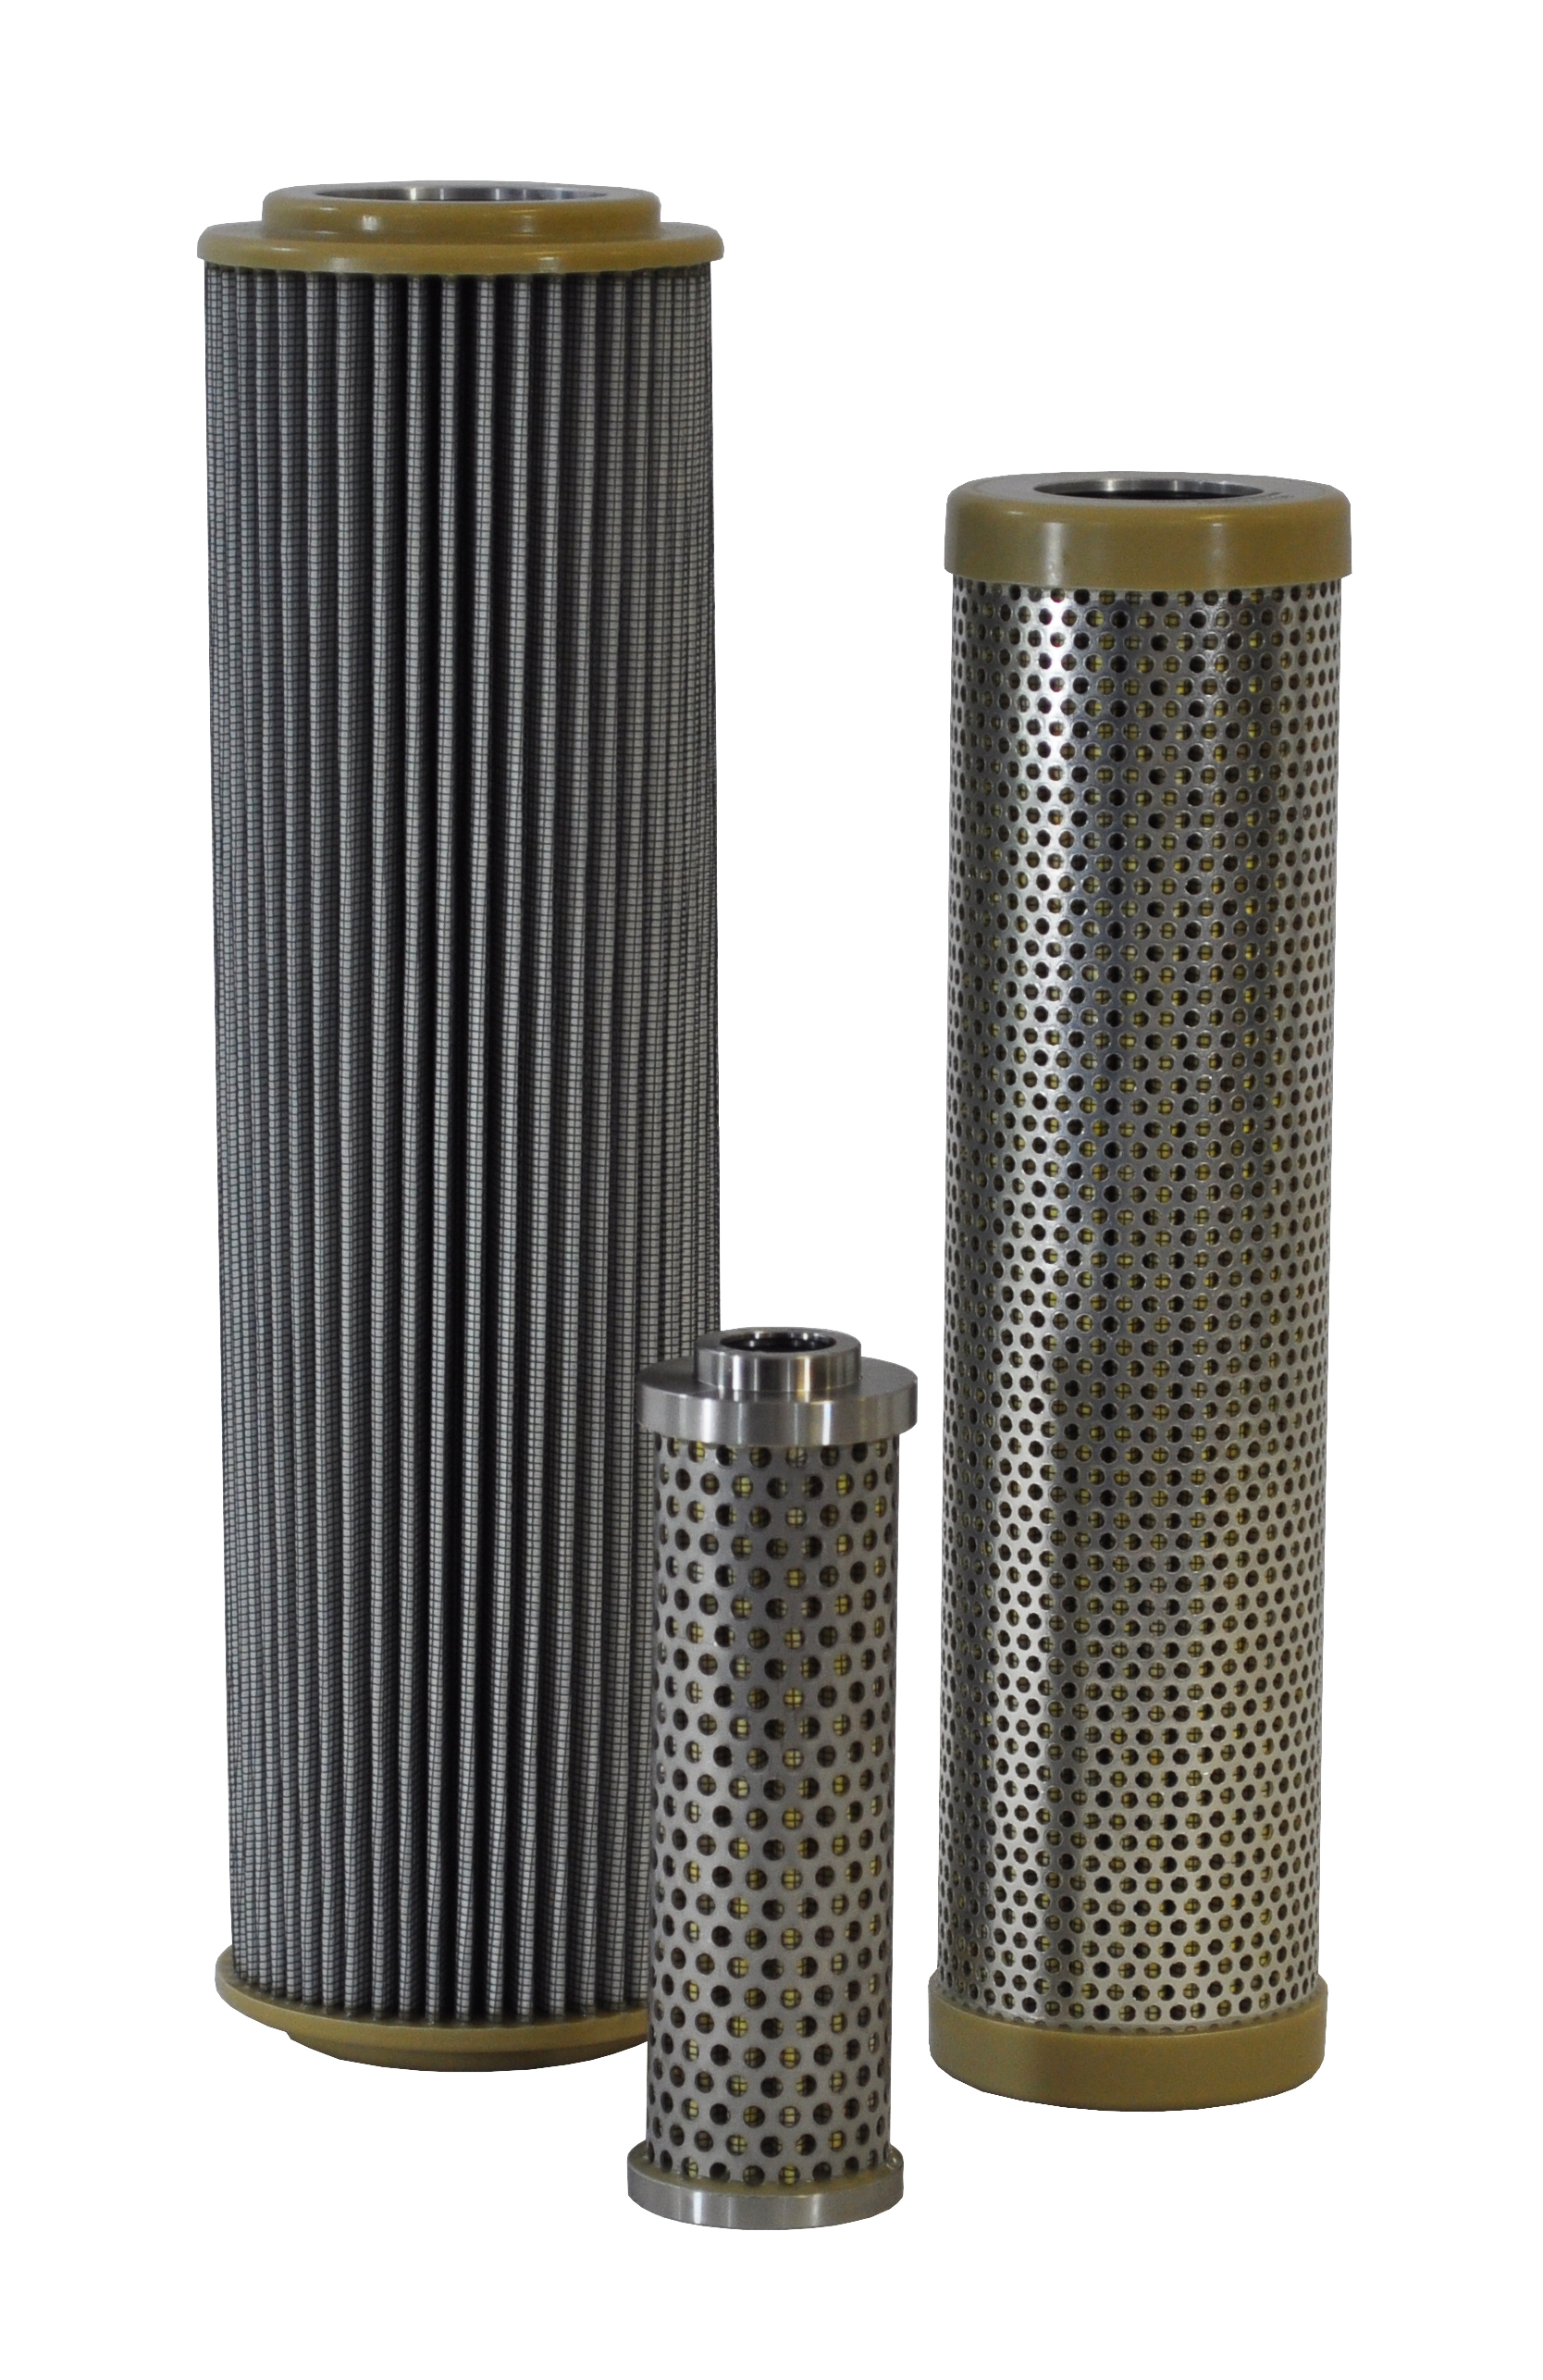 Hilliard Corporation Hilco Filter Cartridges Fuel Filters By Dimensions Gas Coalescer Cartridge